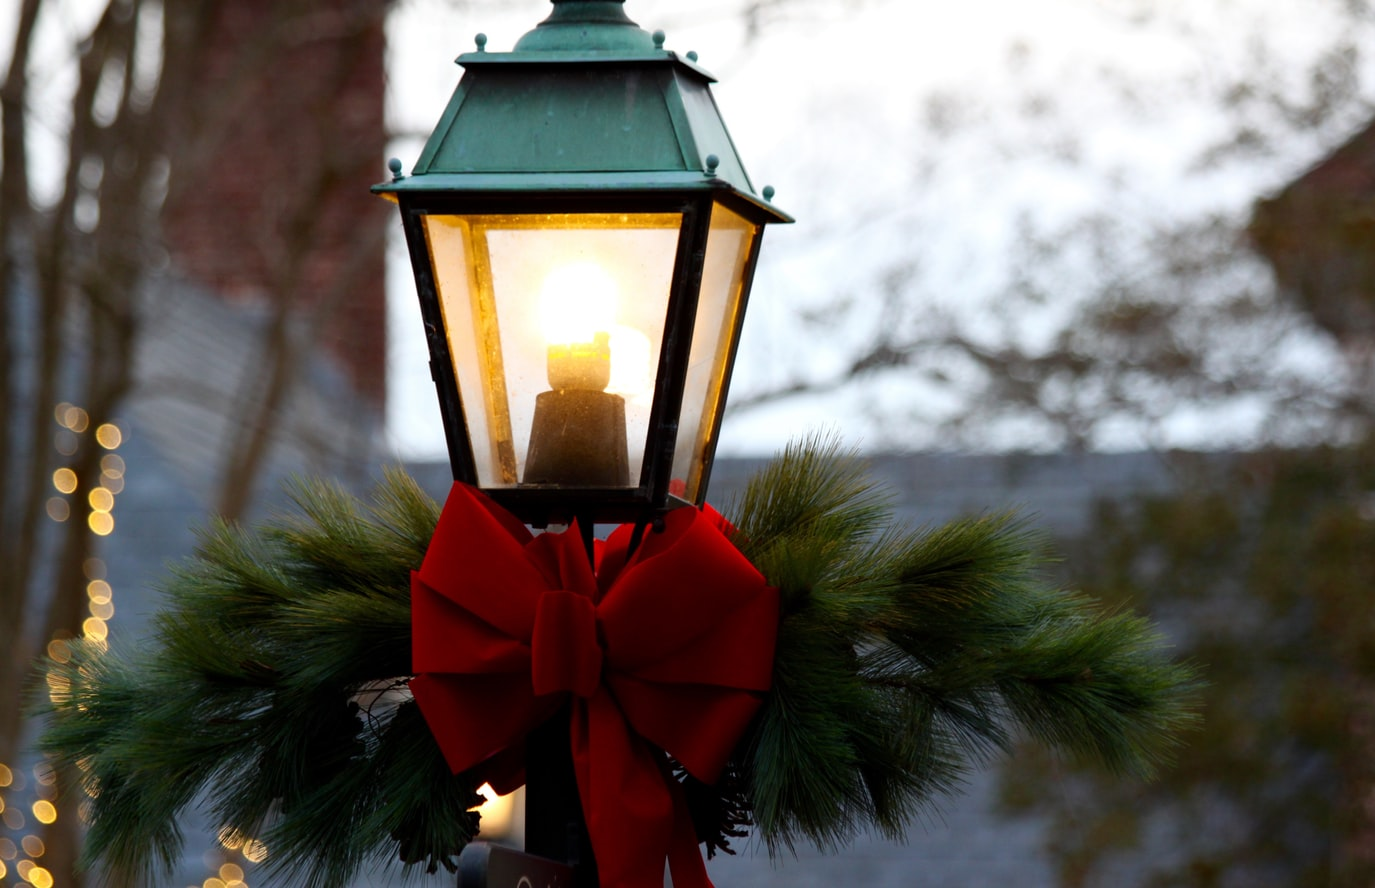 A street light with a garland and red bow.